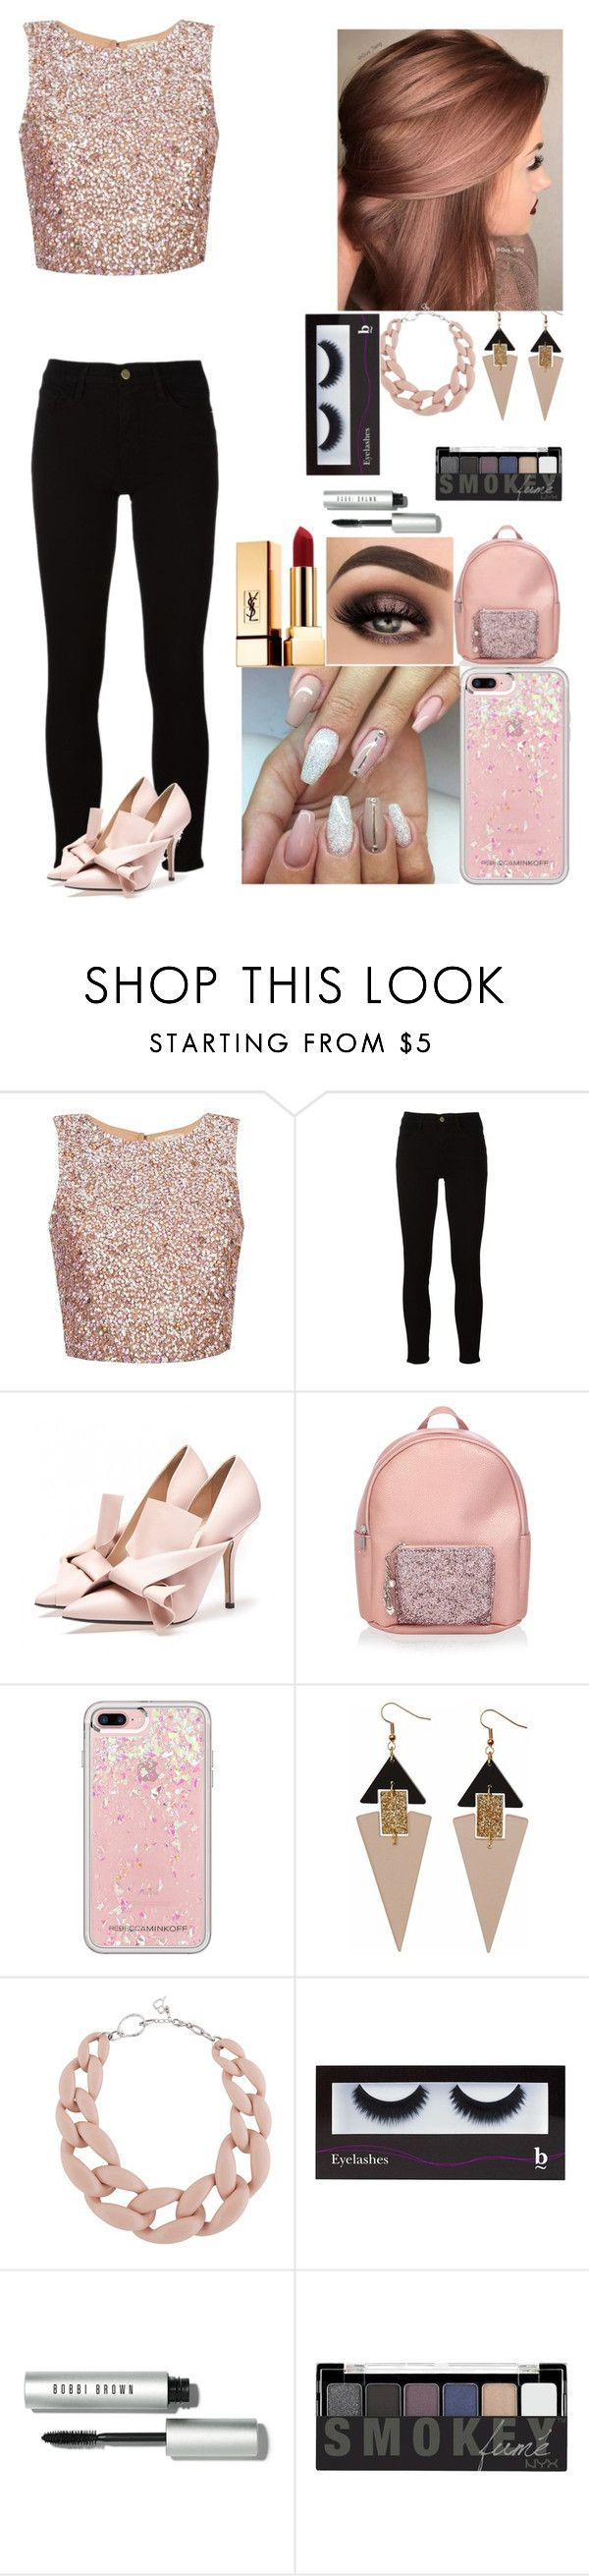 """Saturday Night"" by rider4life12 ❤ liked on Polyvore featuring Frame, Monsoon, Rebecca Minkoff, Toolally, DIANA BROUSSARD, BBrowBar, Bobbi Brown Cosmetics, NYX and Yves Saint Laurent"